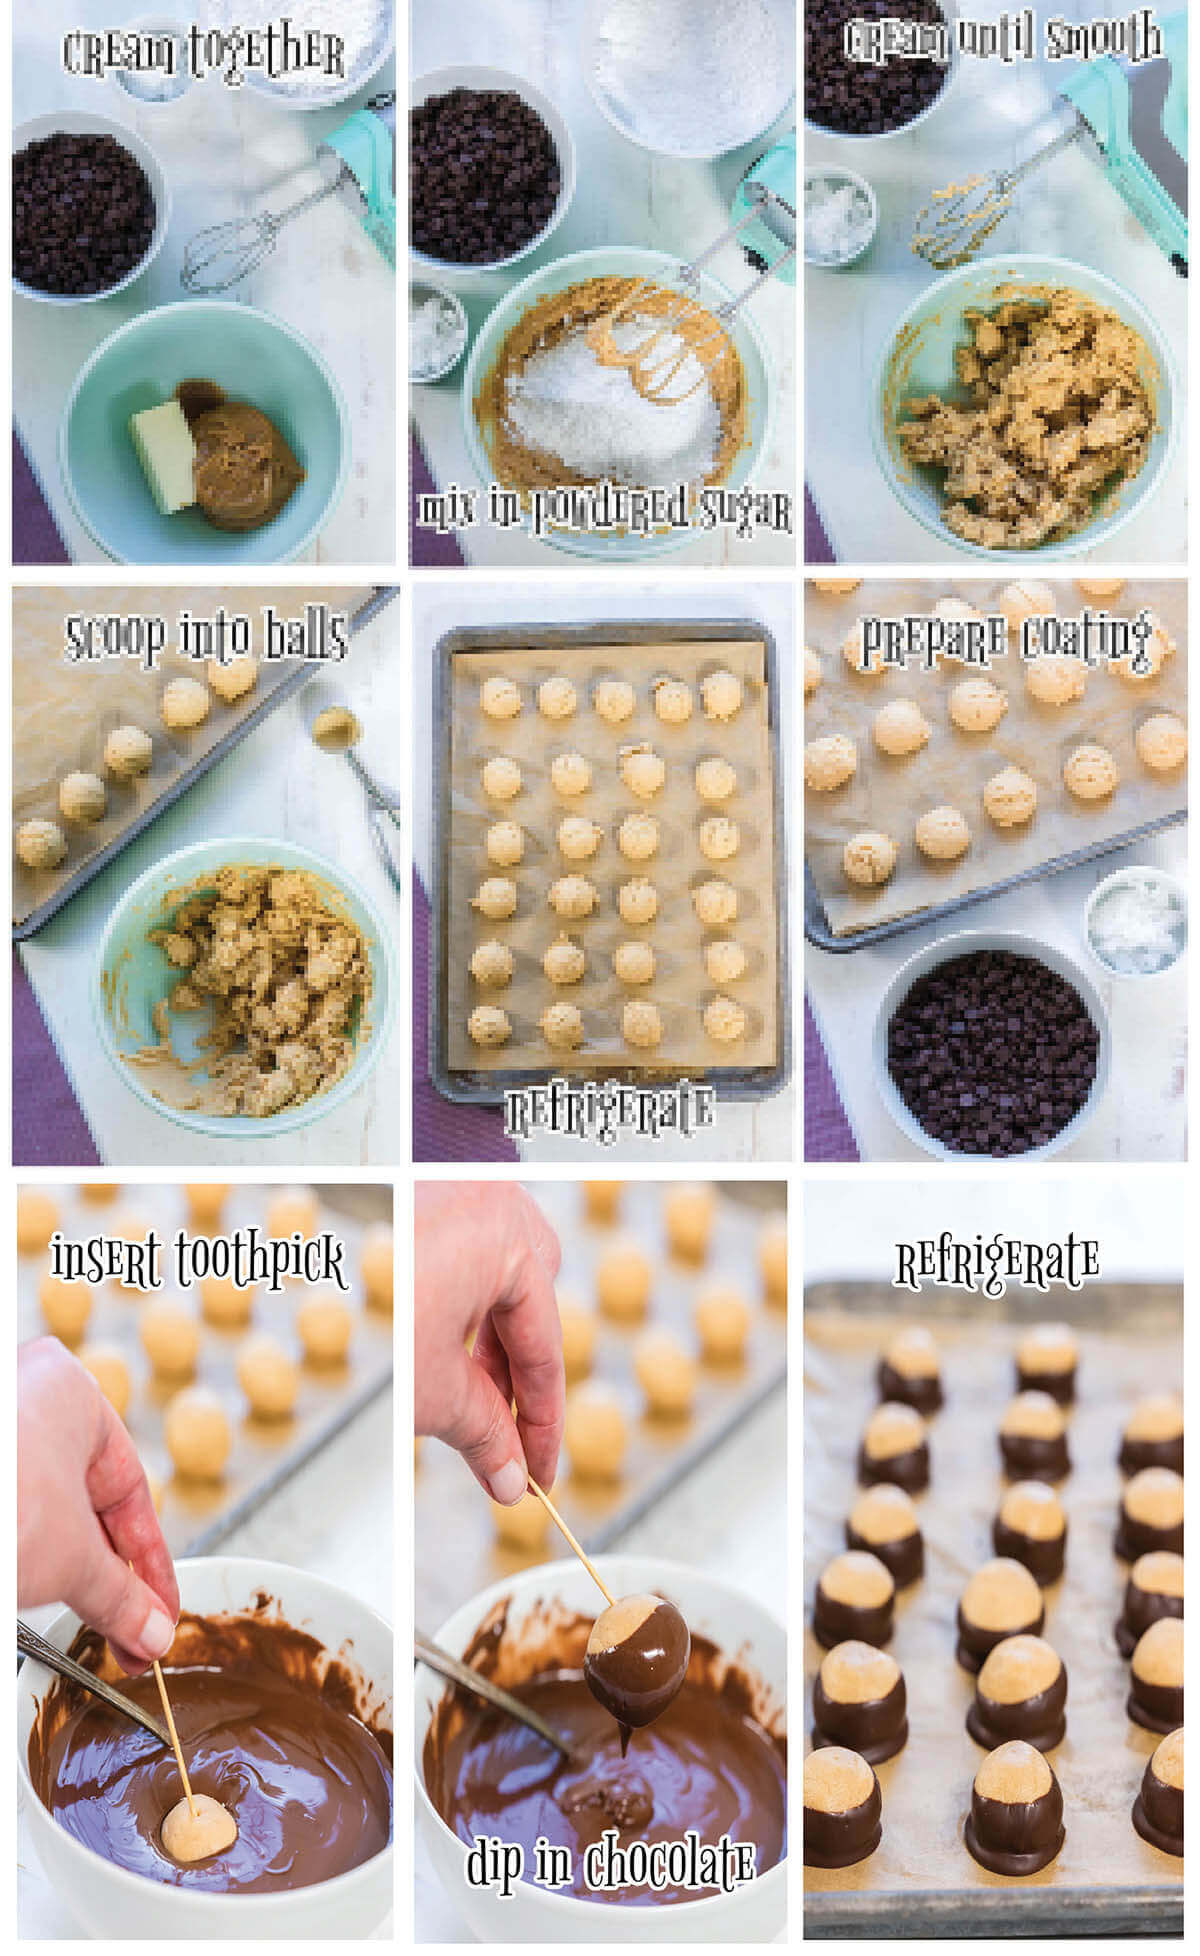 Step by step instructions showing how to make recipe